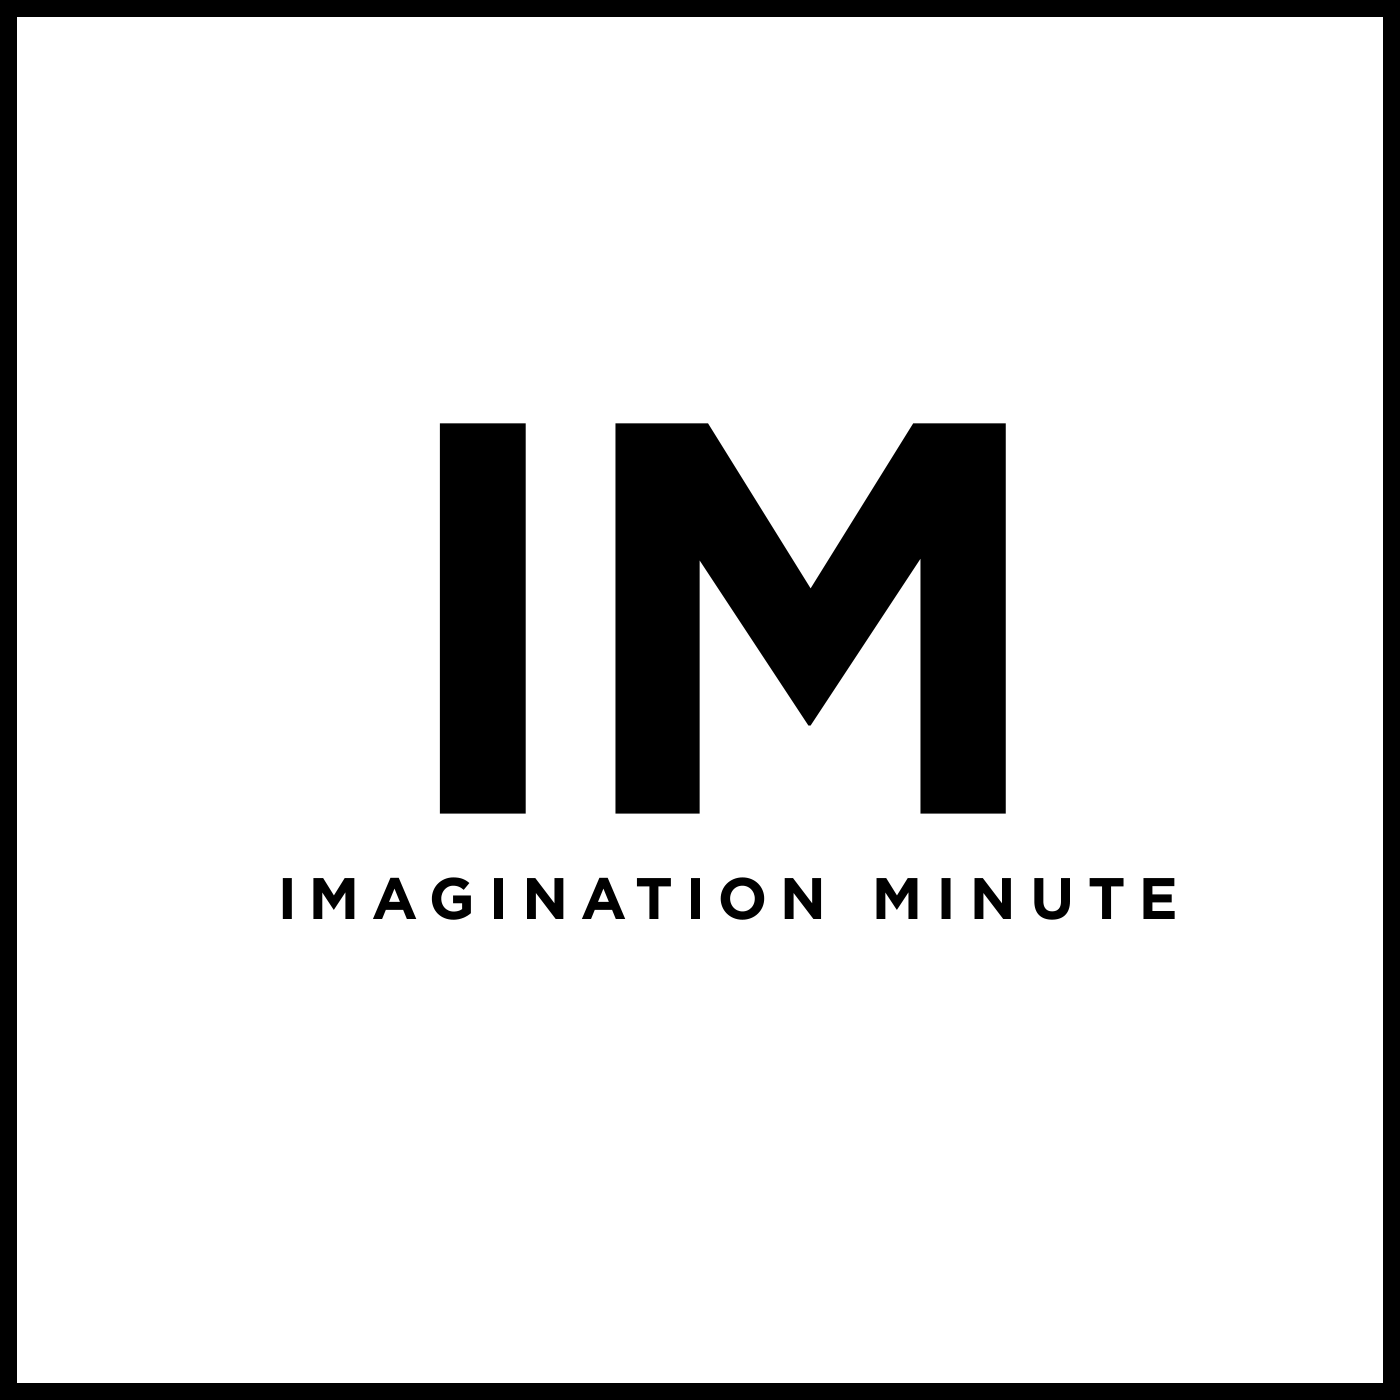 Imagination Minute